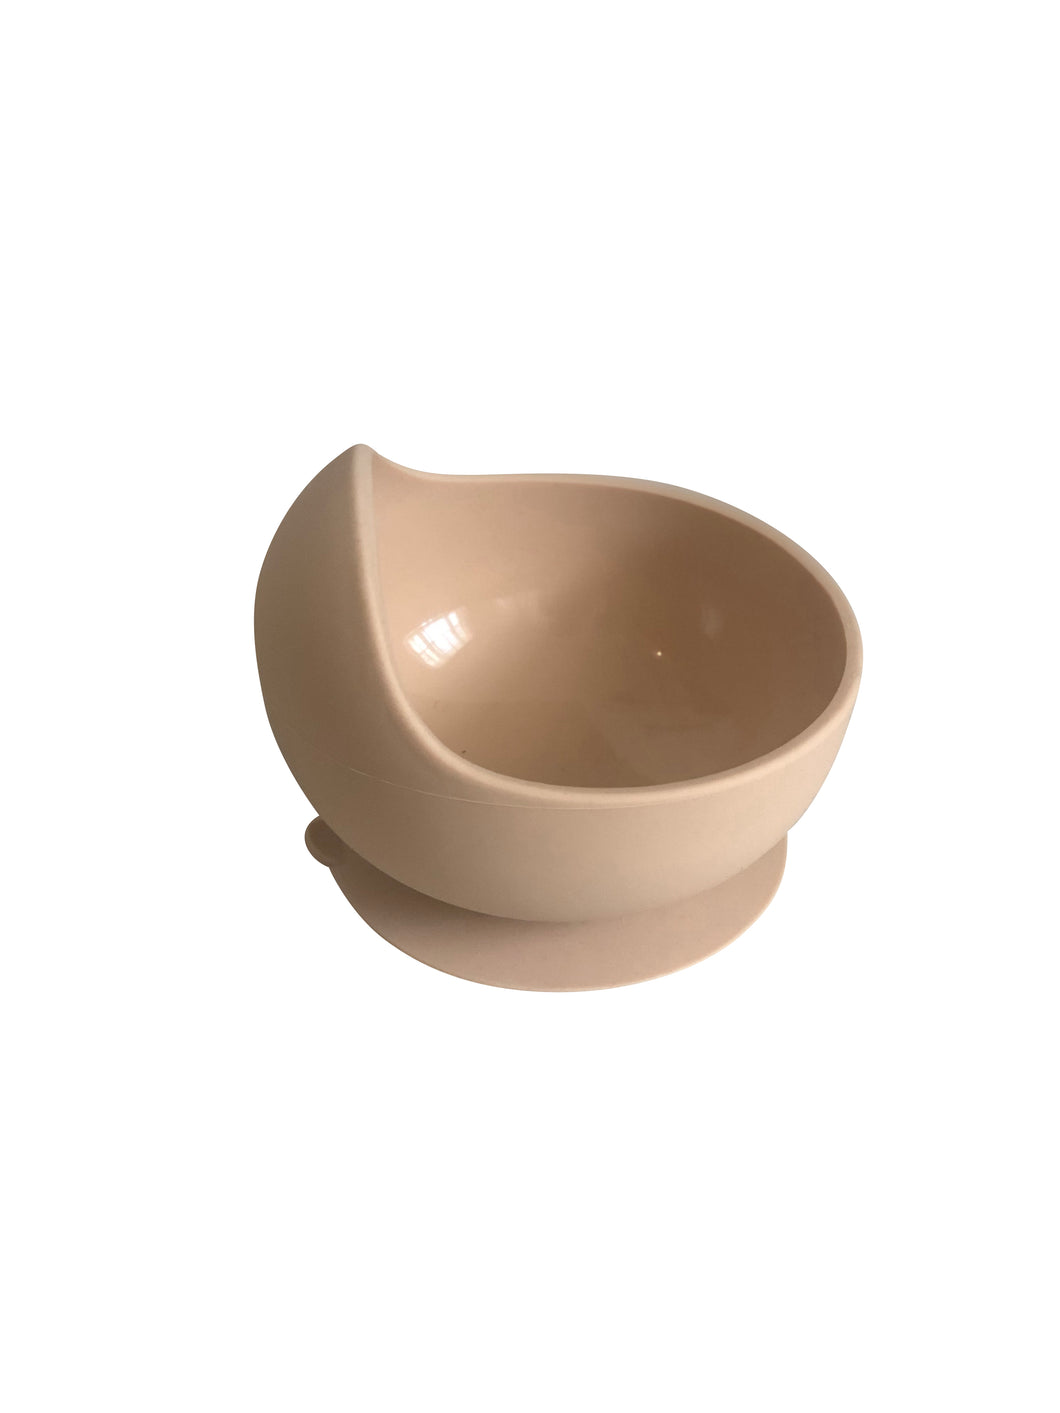 Silicone suction bowl - Peach